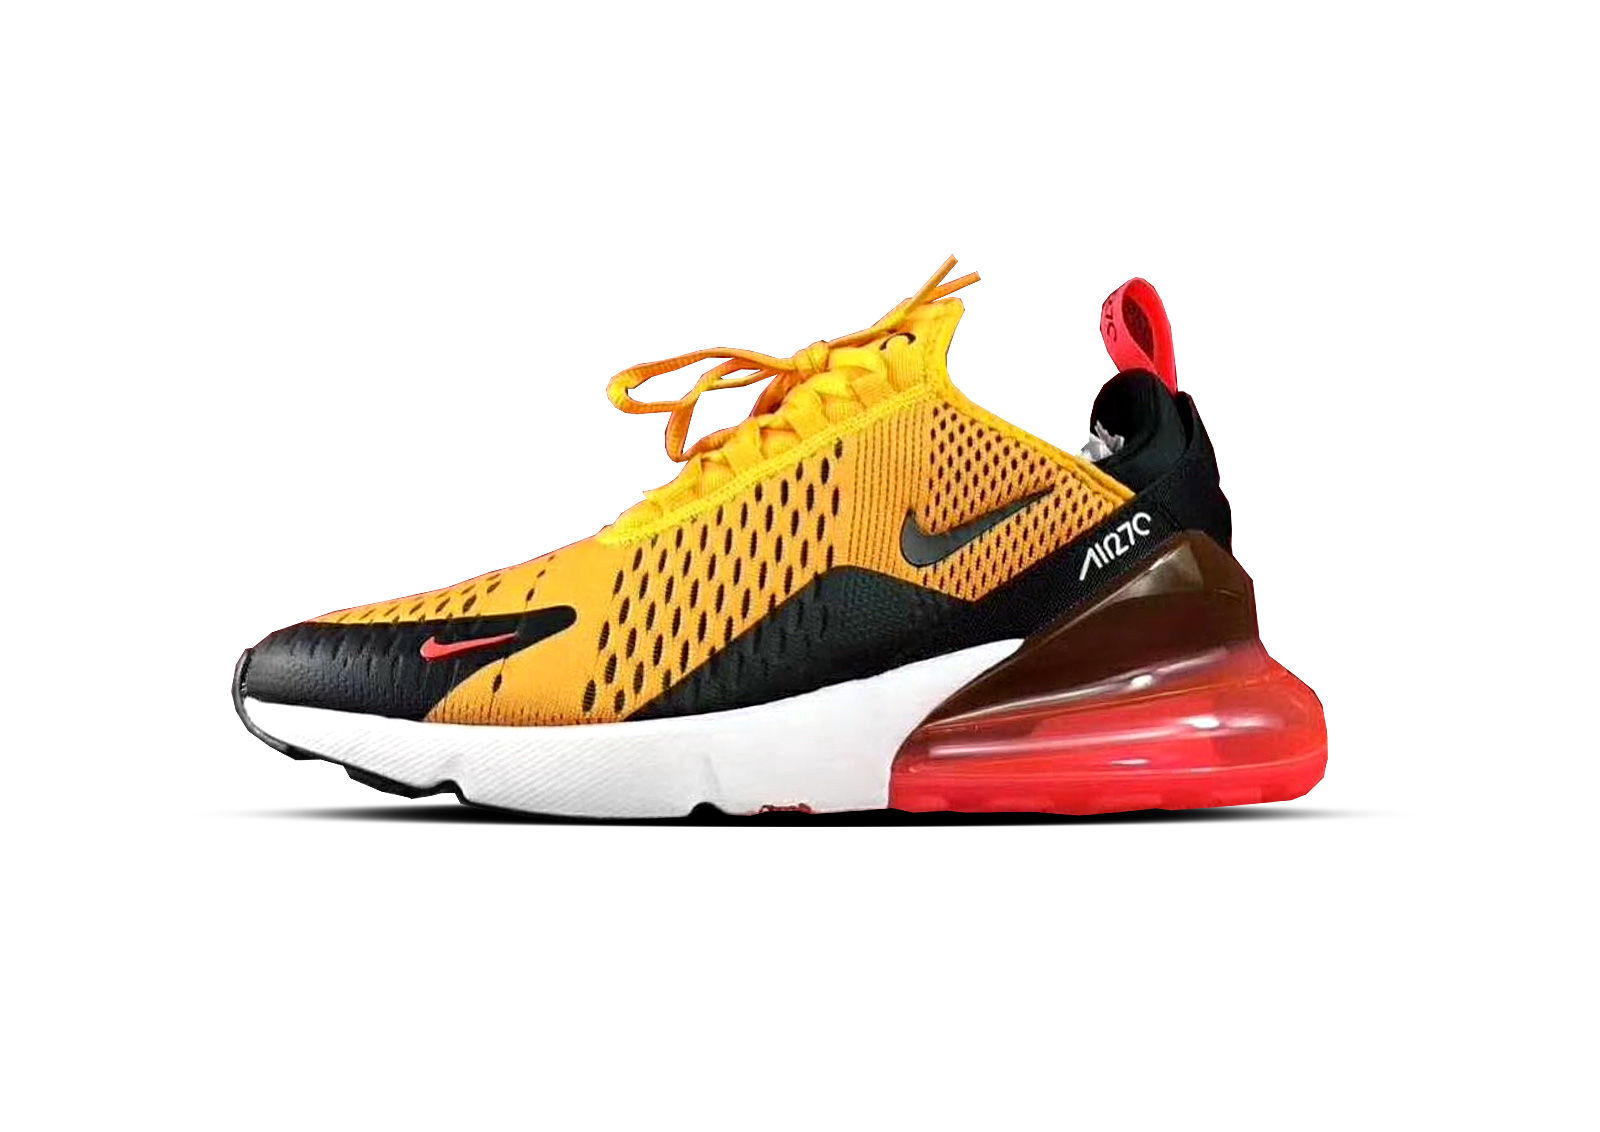 nike air max 270 tiger preview sneakers addict. Black Bedroom Furniture Sets. Home Design Ideas